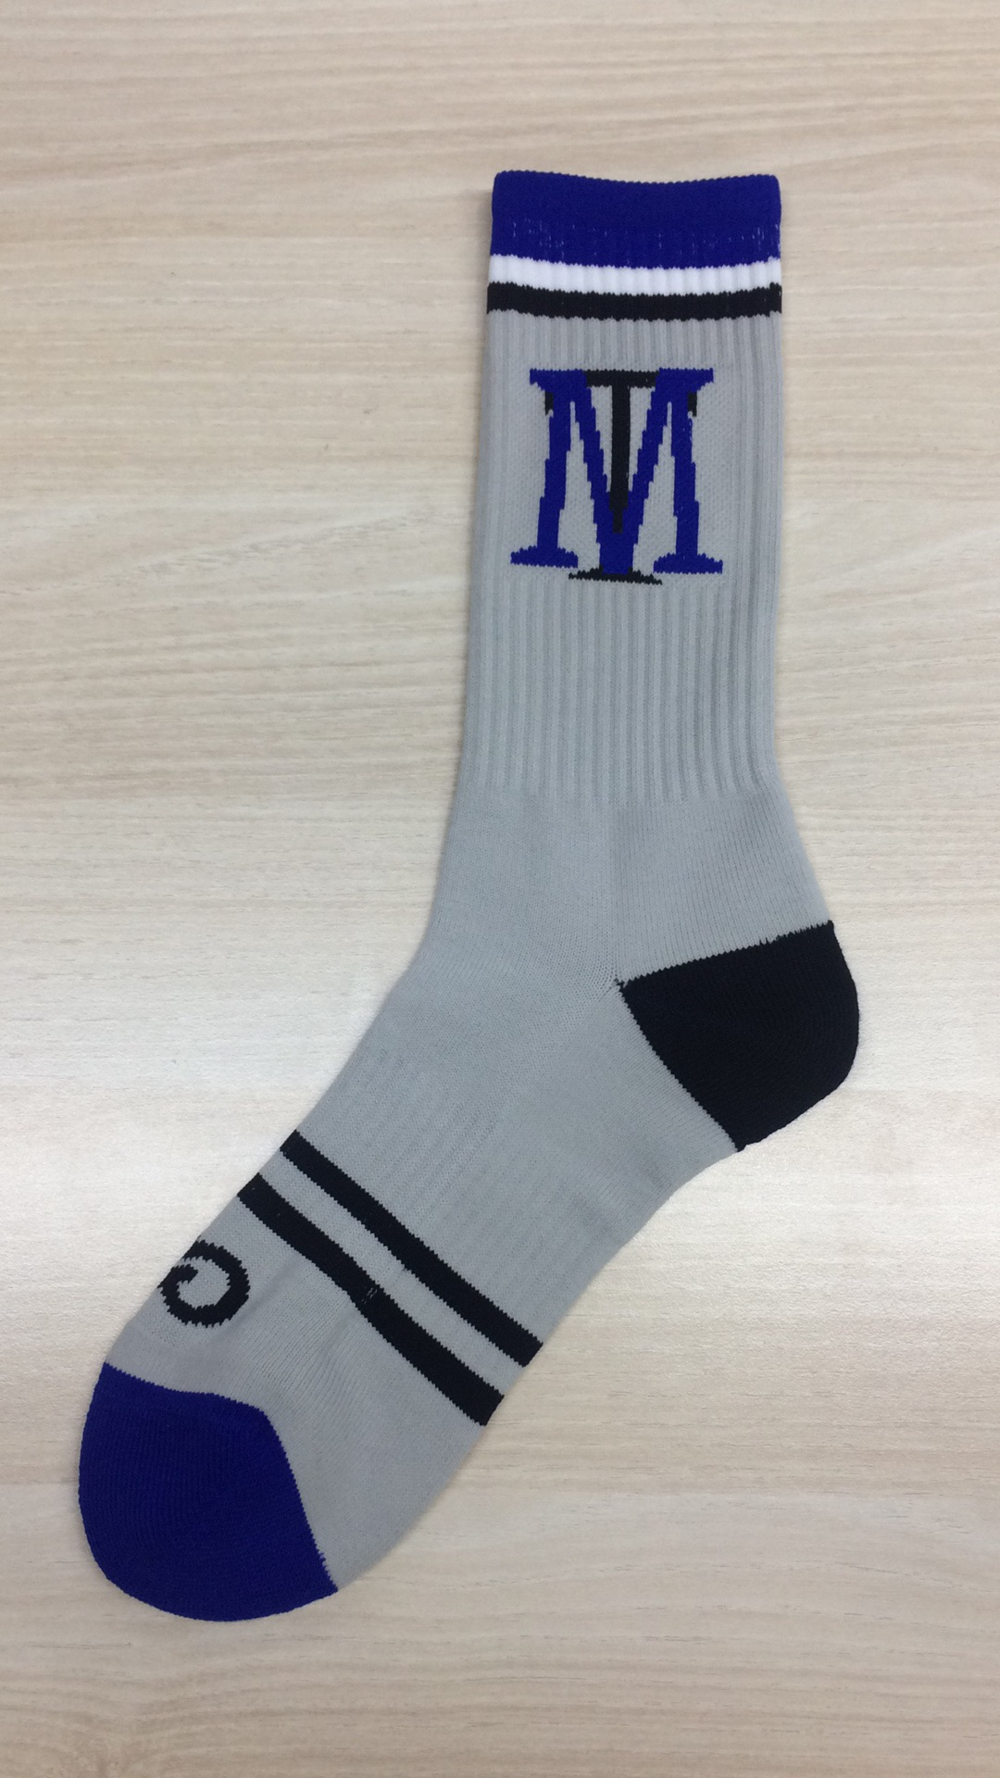 Blue White and Black Baseball Uniforms Socks